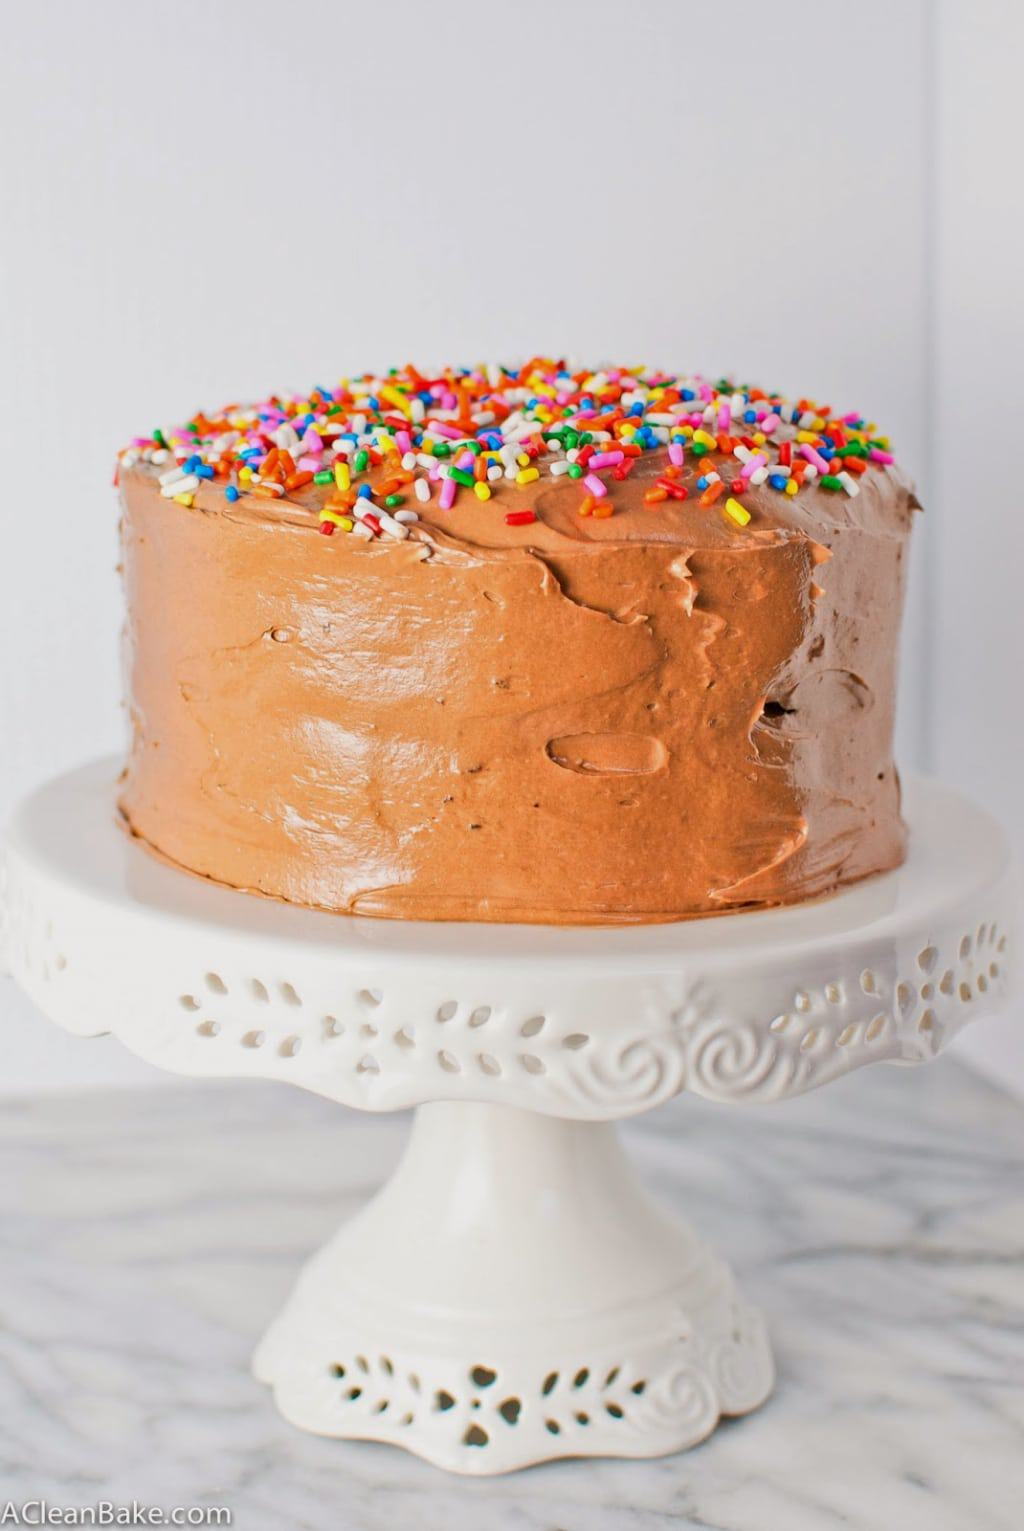 ... healthy gluten-free layer cake. You'll never know it's gluten-free